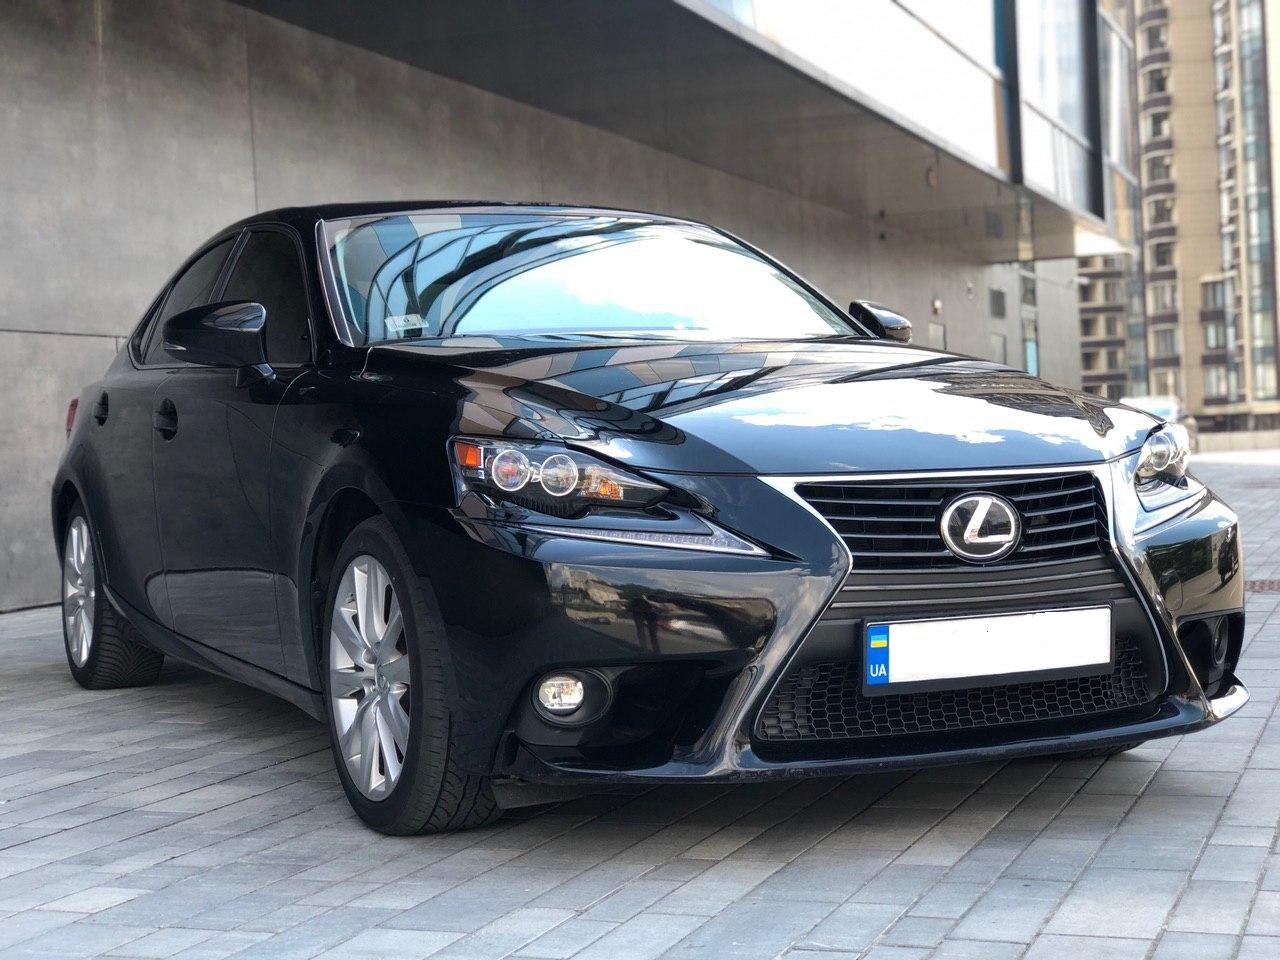 Rent a car LEXUS IS300 2015 in Kyiv - Megarent